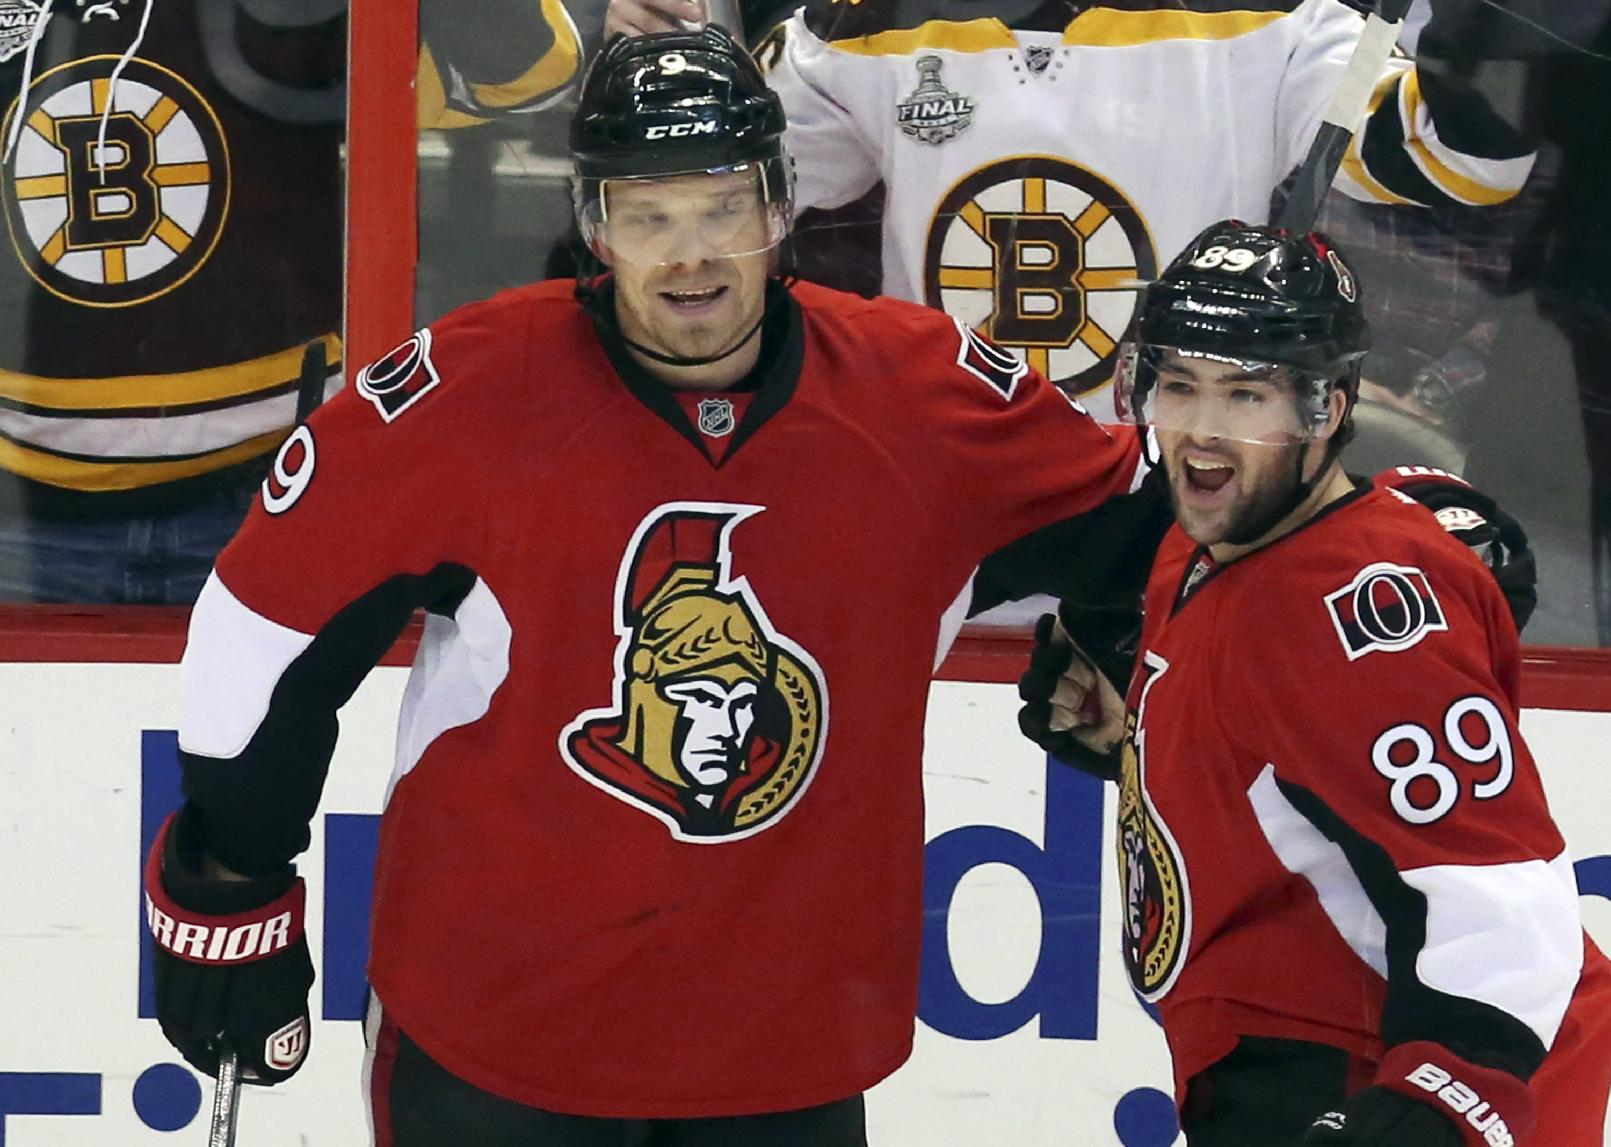 Senators slip past Bruins 4-3